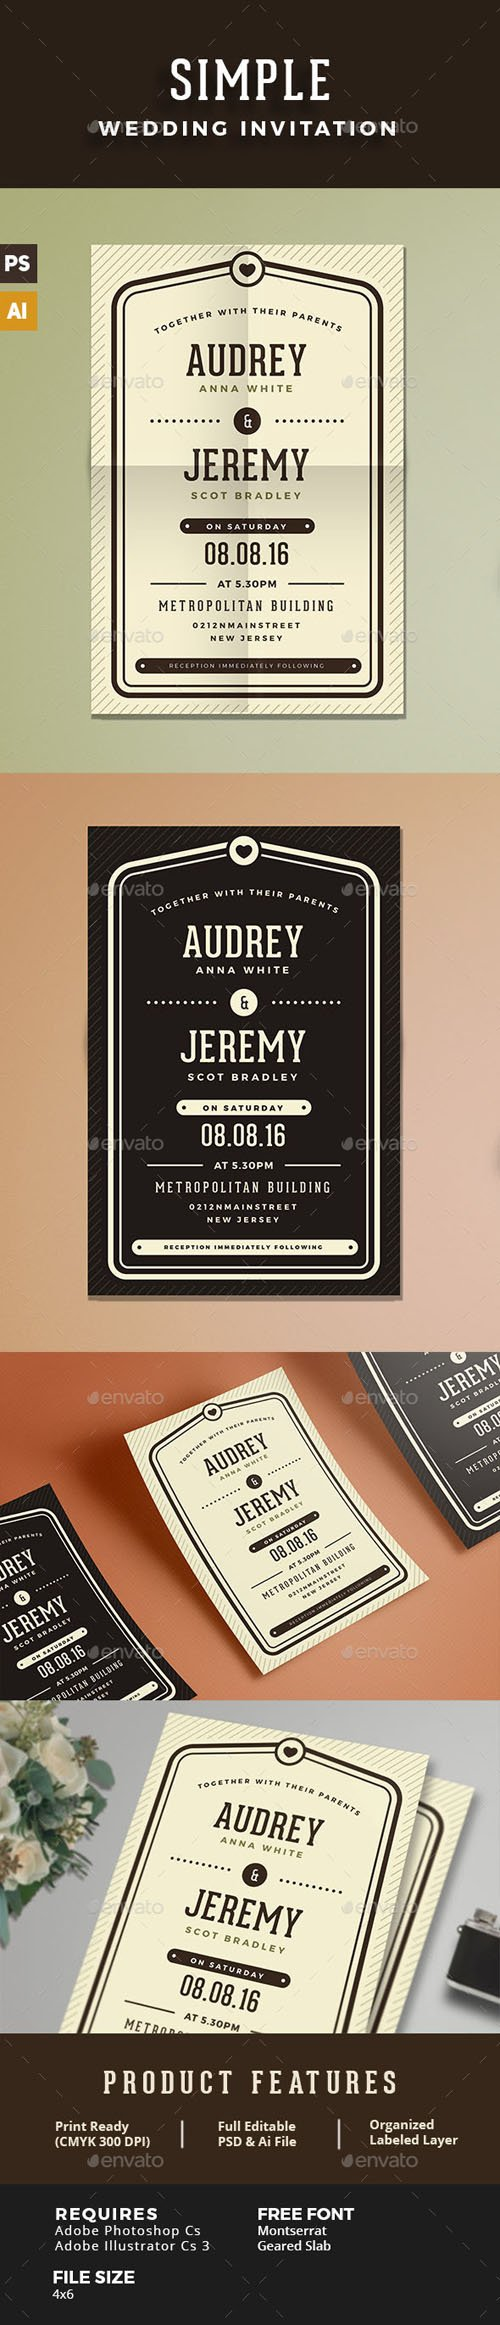 GR - Simple Wedding Invitation 15730655